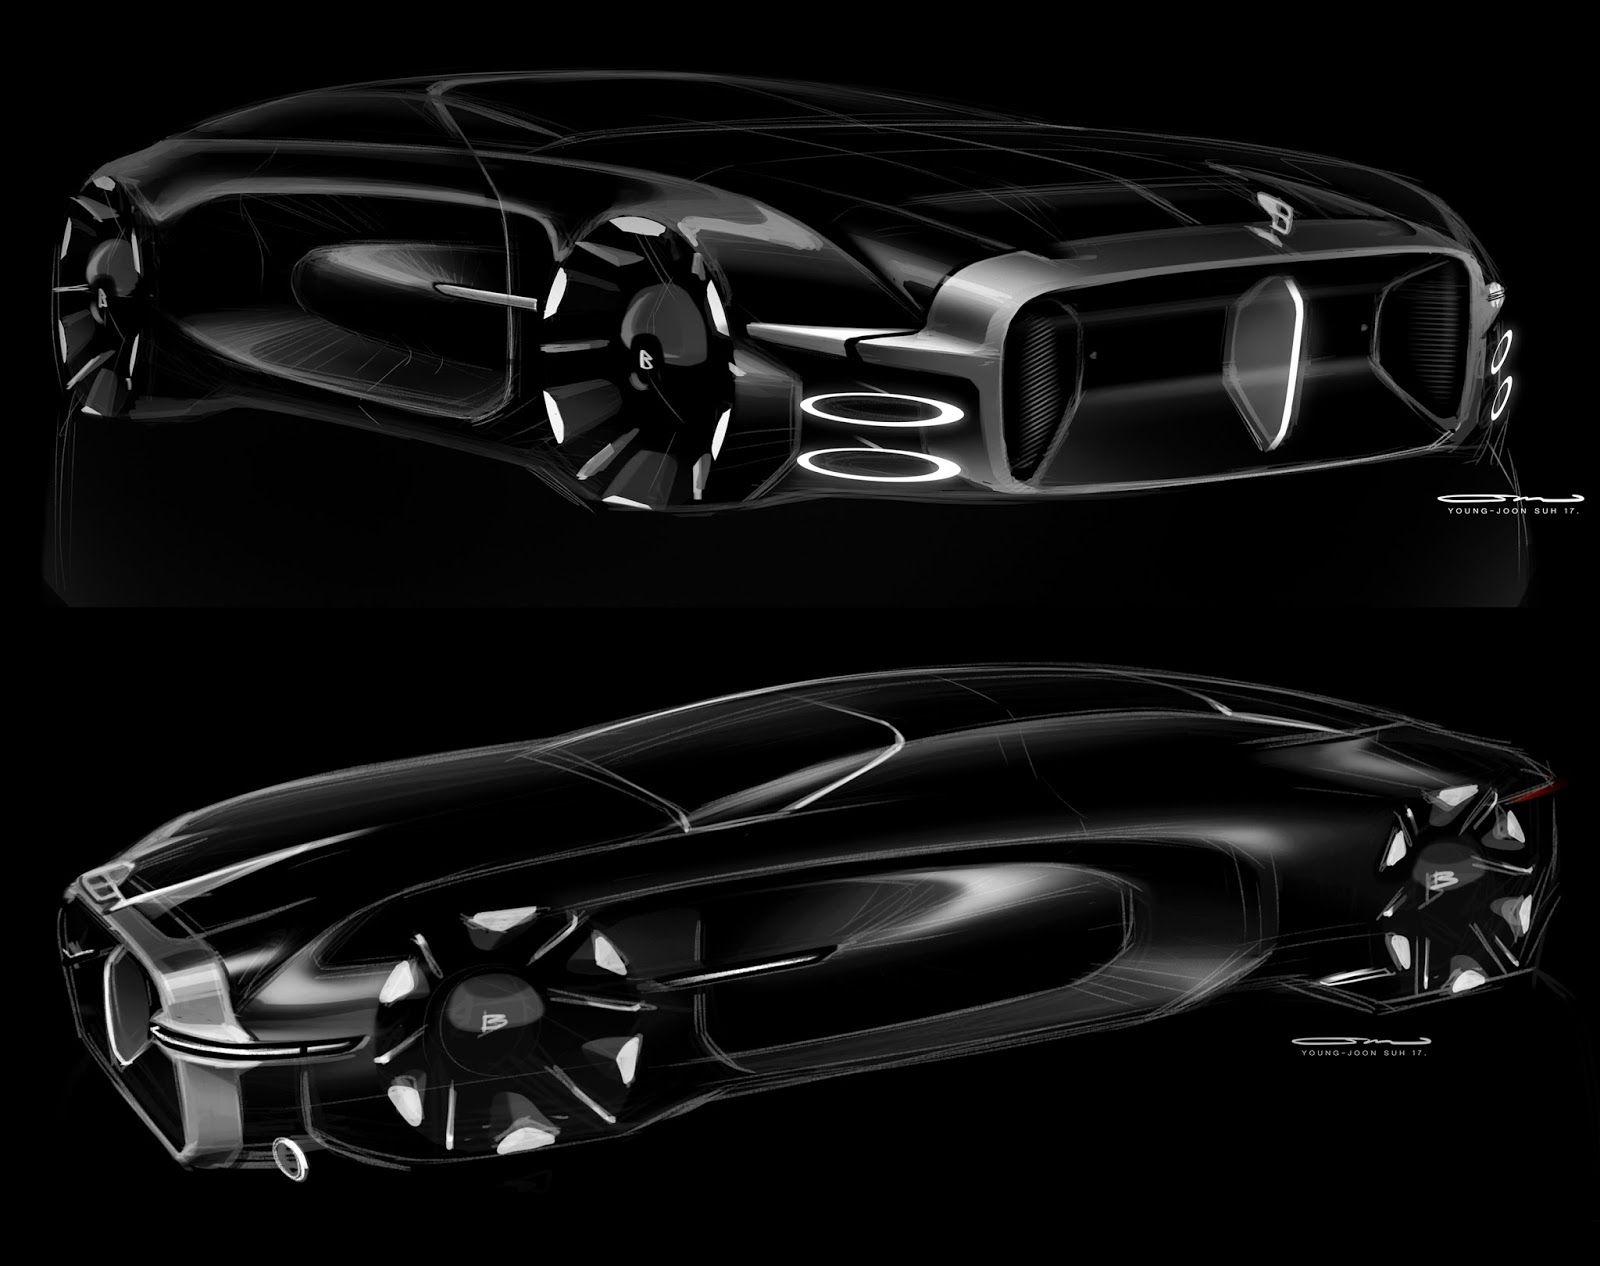 young-joon suh blog | car design, car design sketch, concept